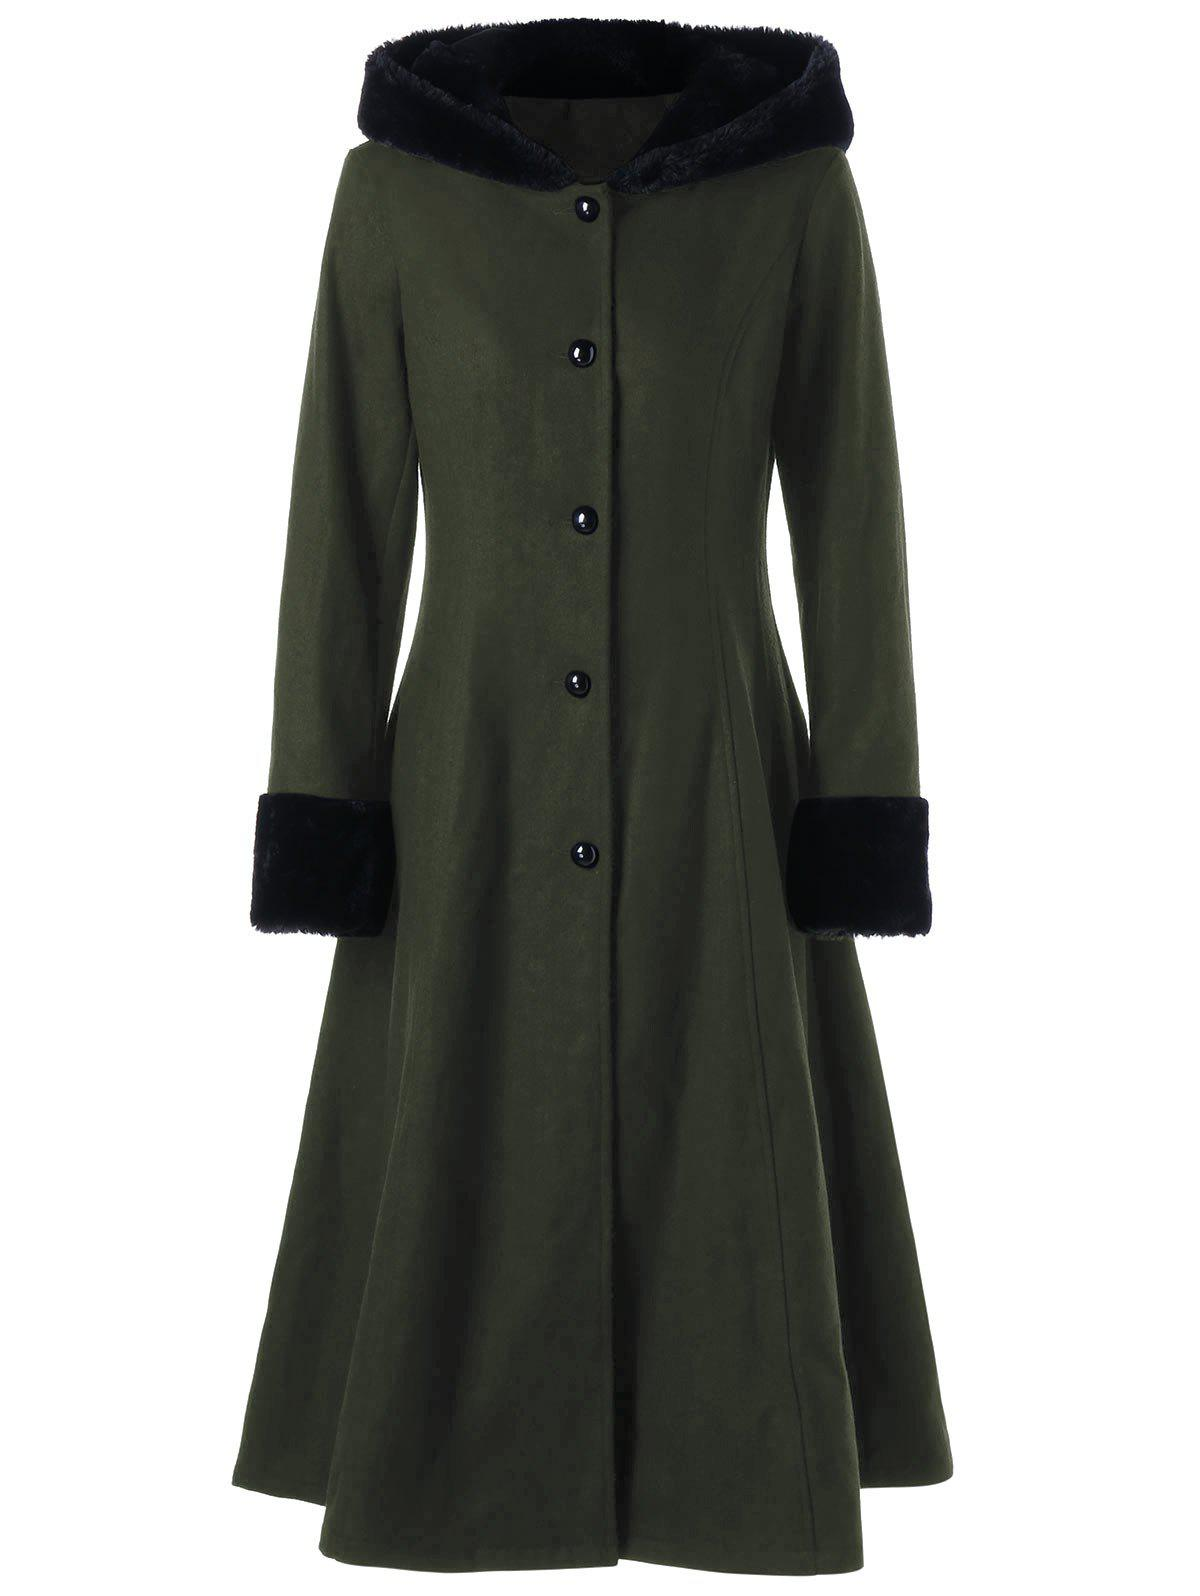 Lace Up Longline Hooded Coat - OLIVE GREEN 2XL